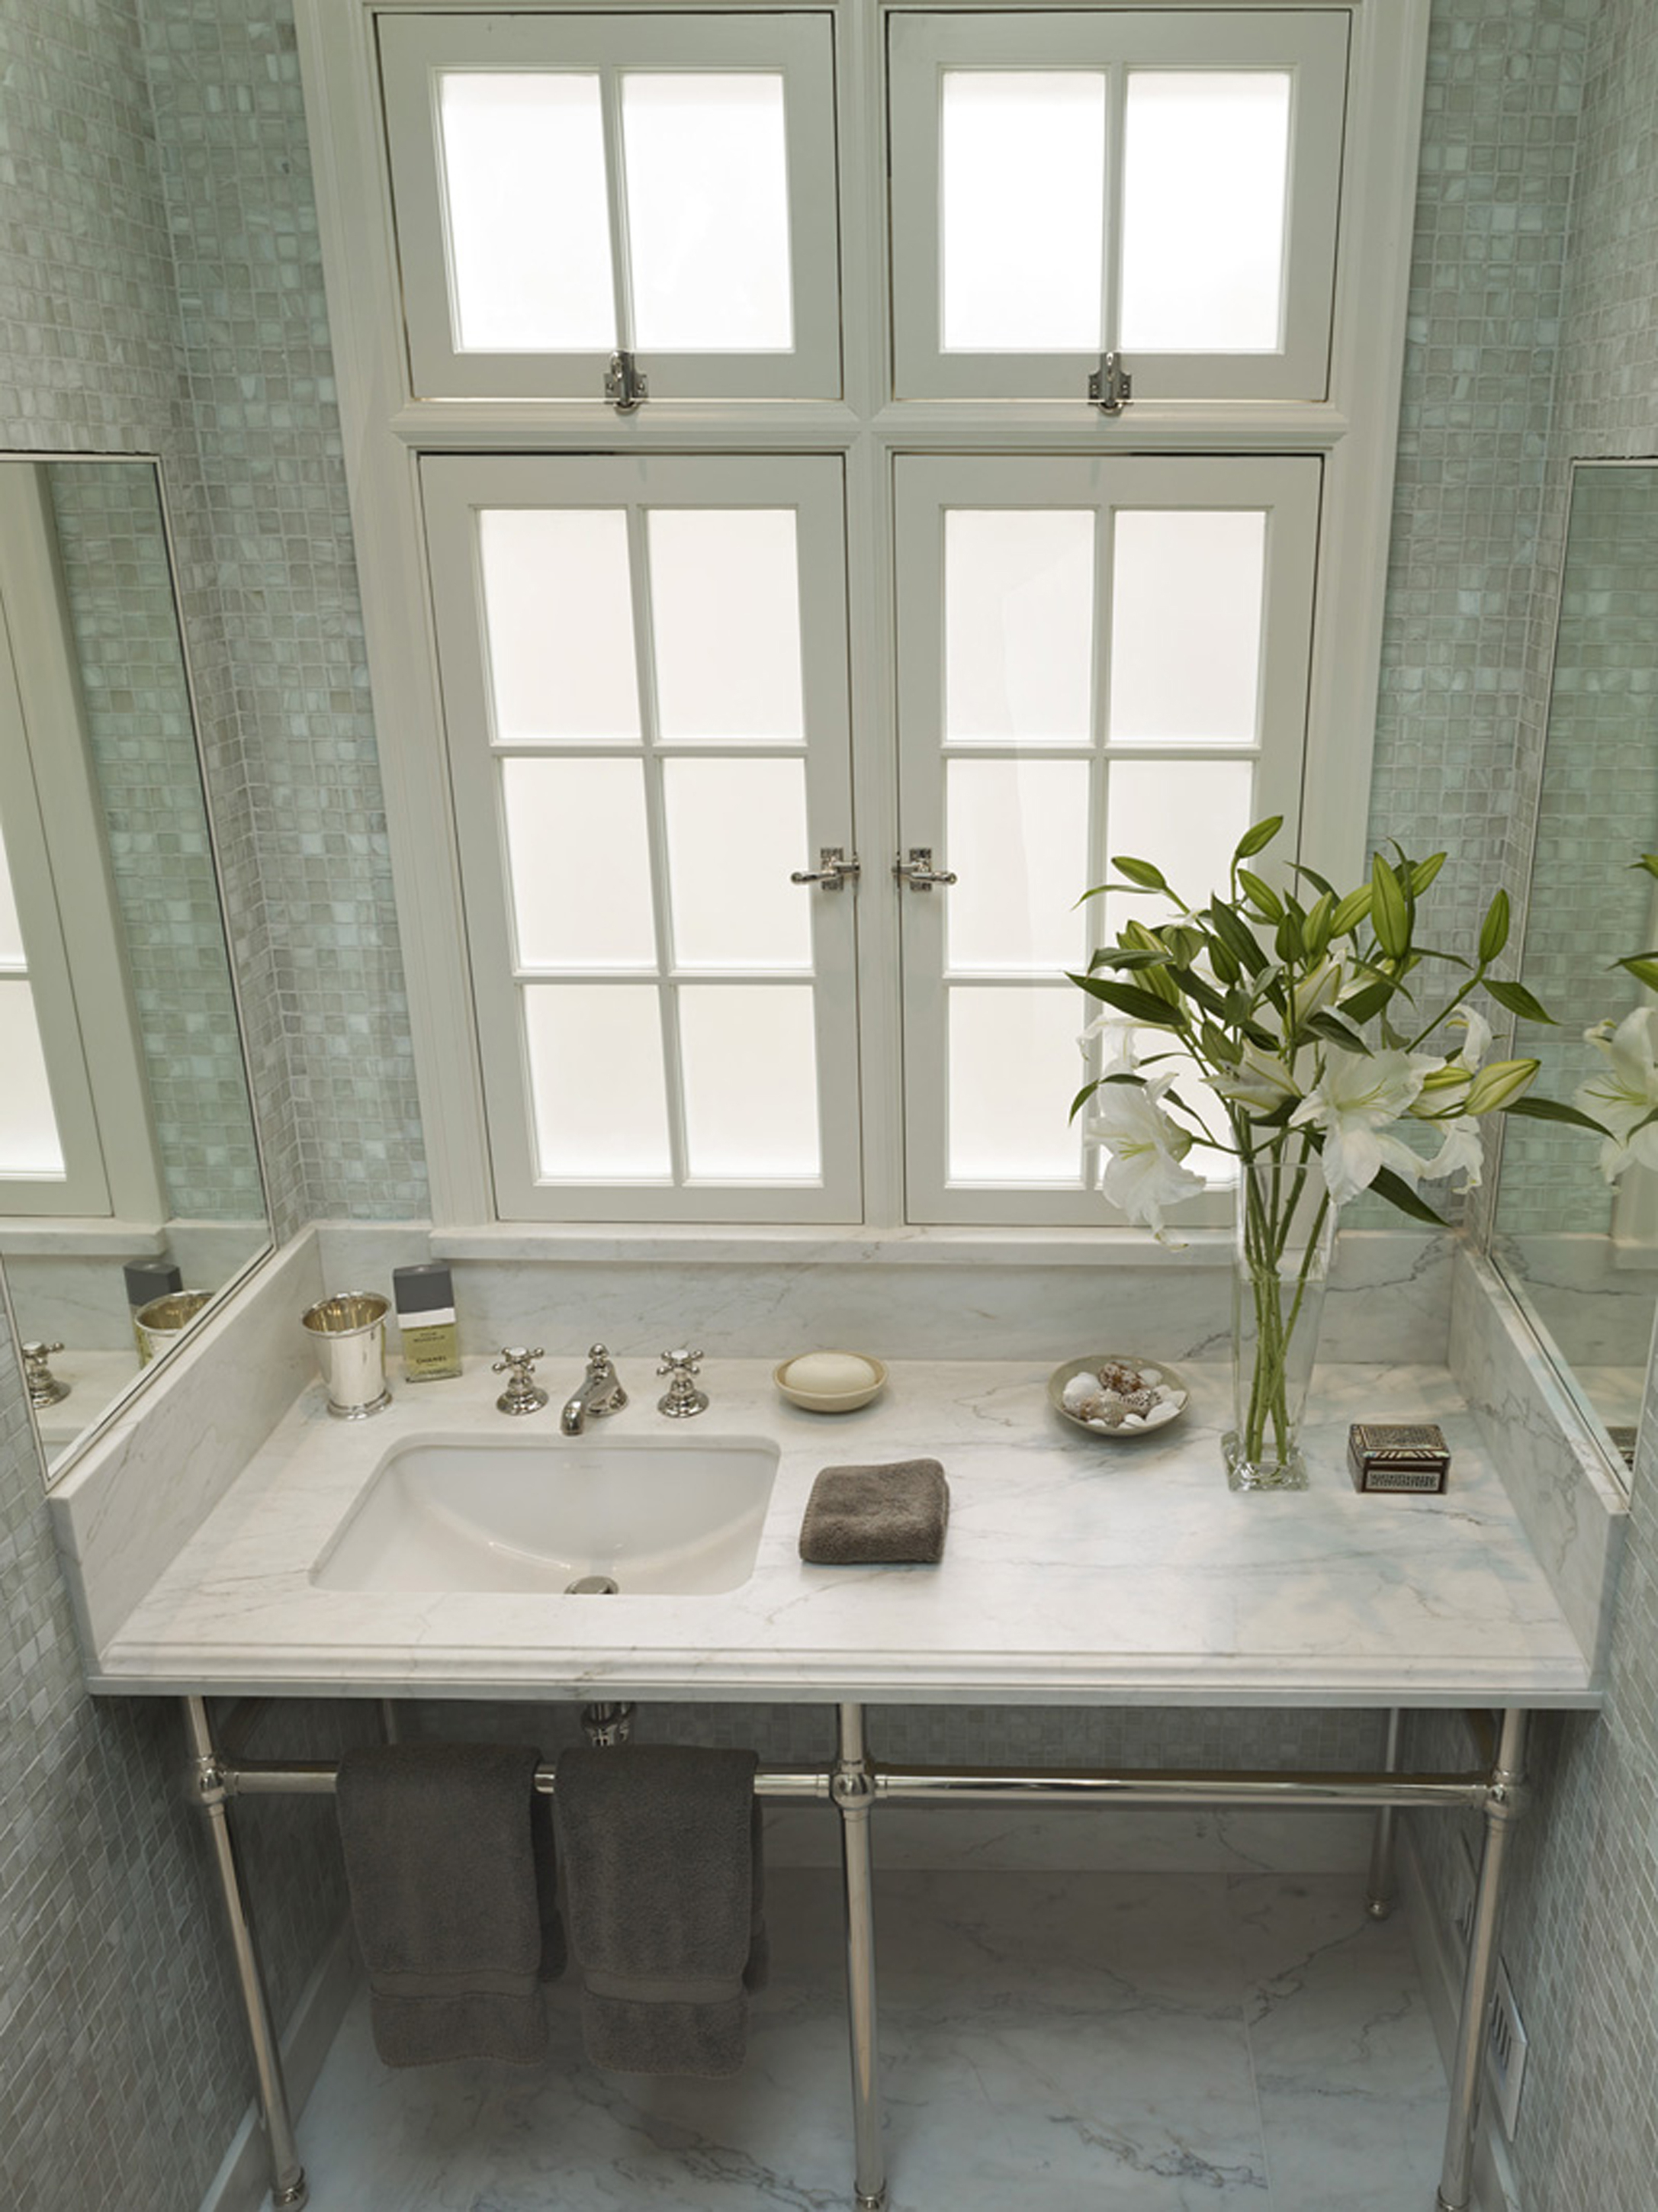 Luxury Gray Glass Tile With White Window Frame And Mirrors And White Countertop With Whiet Sink And Green Plant With Whiet Flowers Cool Glass Tile Inspiration (Image 60 of 123)